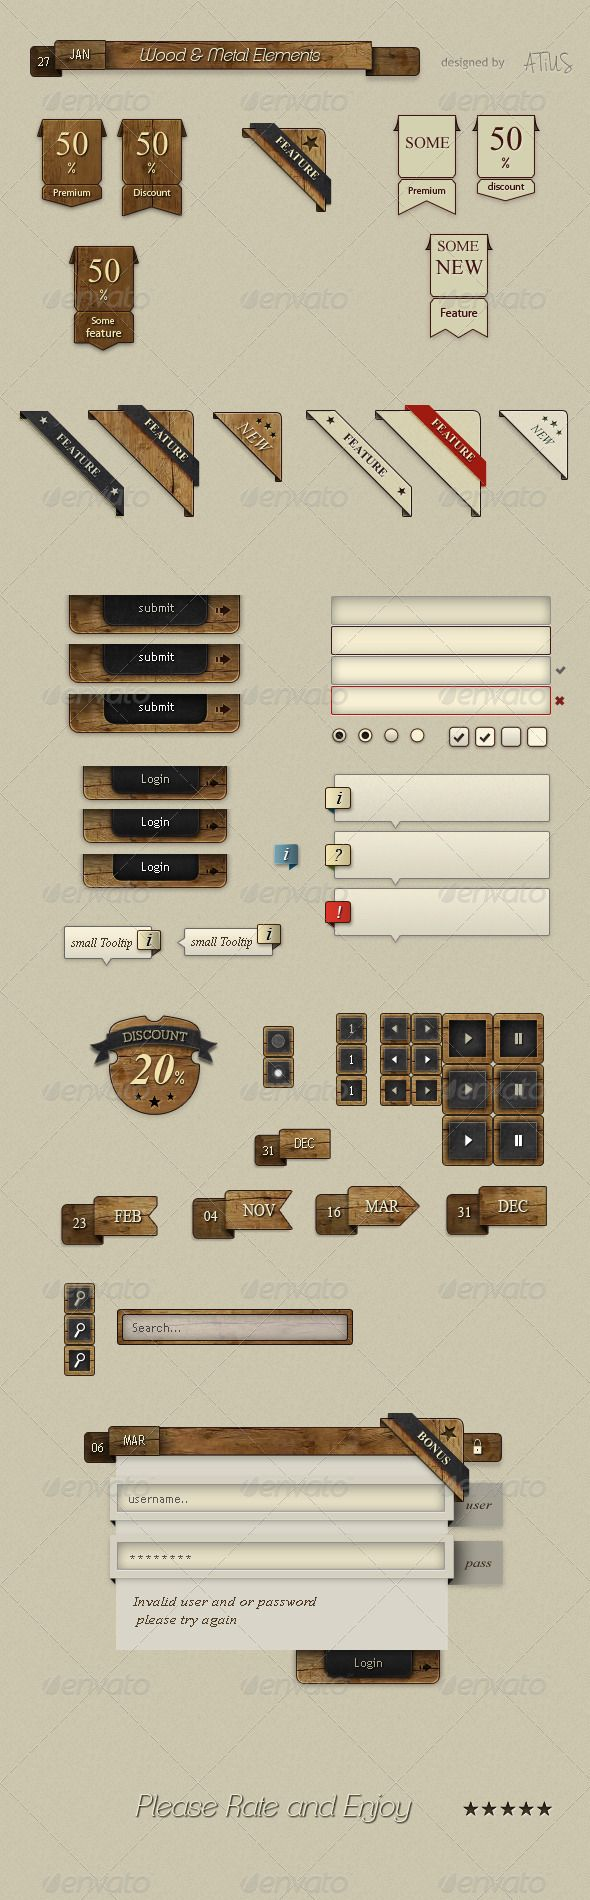 Wood & Metal UI - Buttons Web Elements game user interface ui gui | NOT OUR ART - Please click artwork for source | WRITING INSPIRATION for Dungeons and Dragons DND Pathfinder PFRPG Warhammer 40k Star Wars Shadowrun Call of Cthulhu and other d20 roleplaying fantasy science fiction scifi horror location equipment monster character game design | Create your own RPG Books w/ www.rpgbard.com